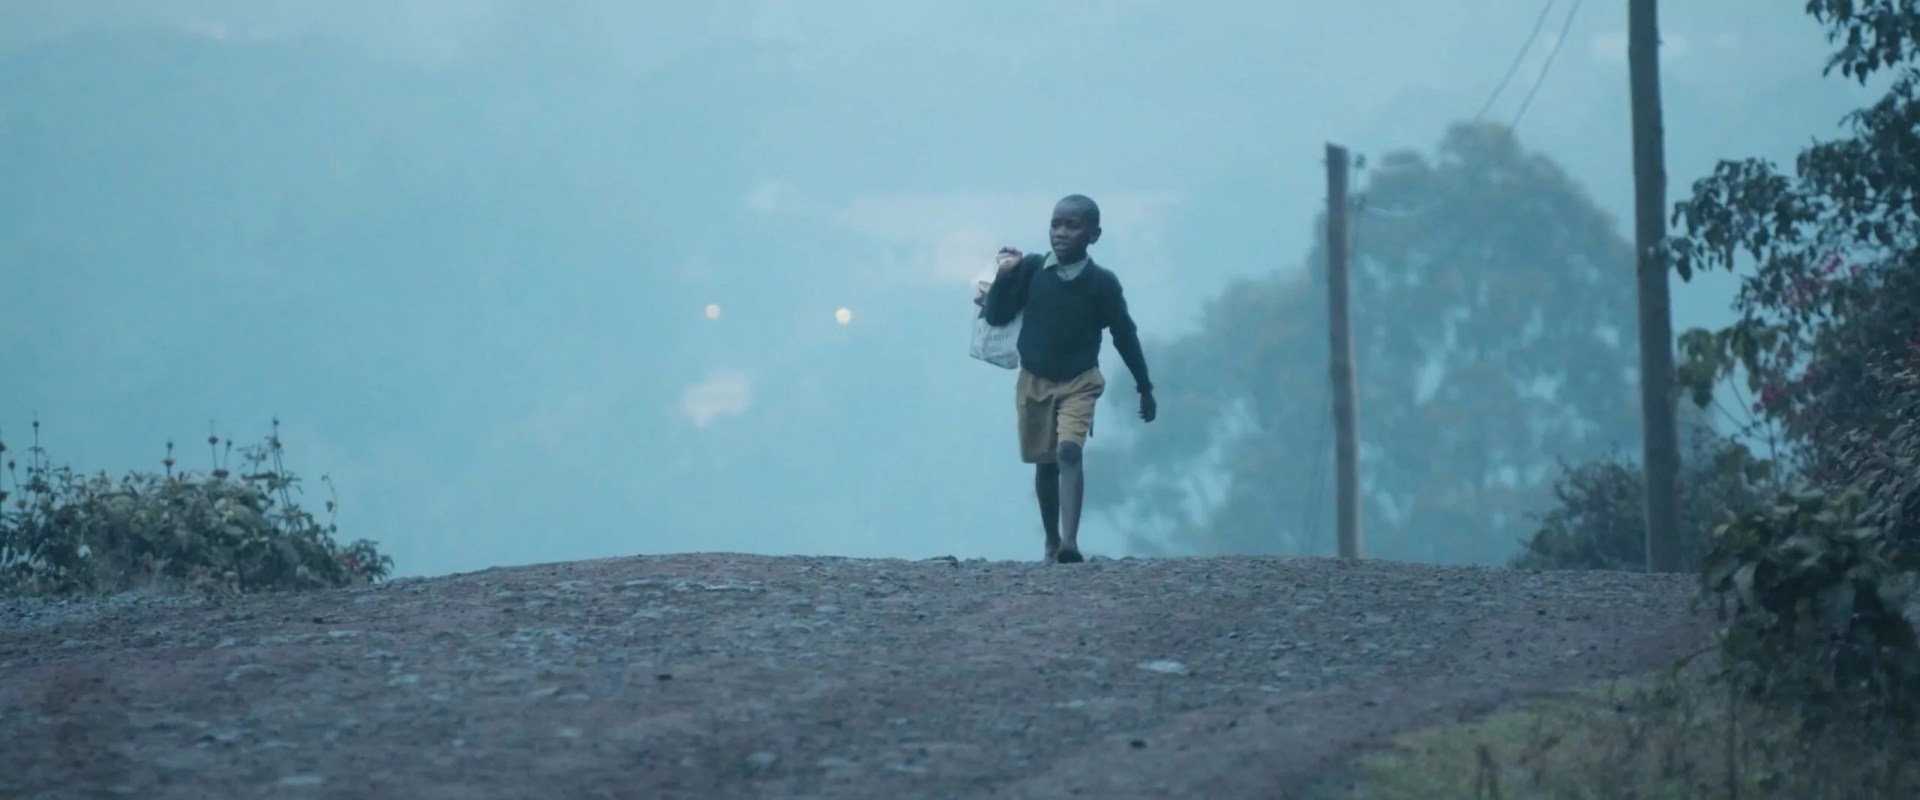 frame grab of a Kenyan child walking from the documentary Inspire Hope